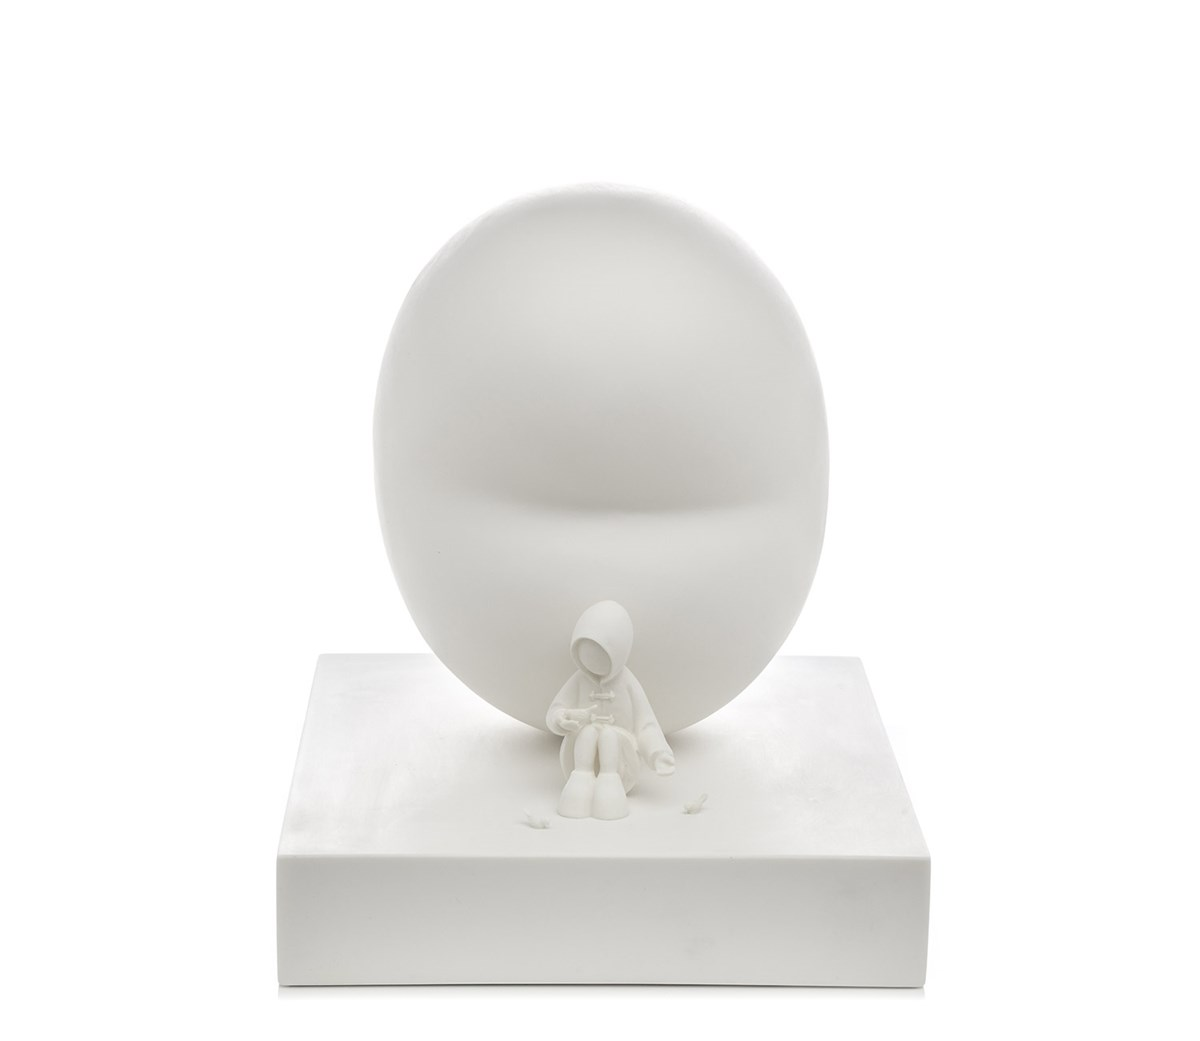 Feed the Birds by Mackenzie Thorpe - Cold Cast Porcelain Sculpture sized 12x14 inches. Available from Whitewall Galleries